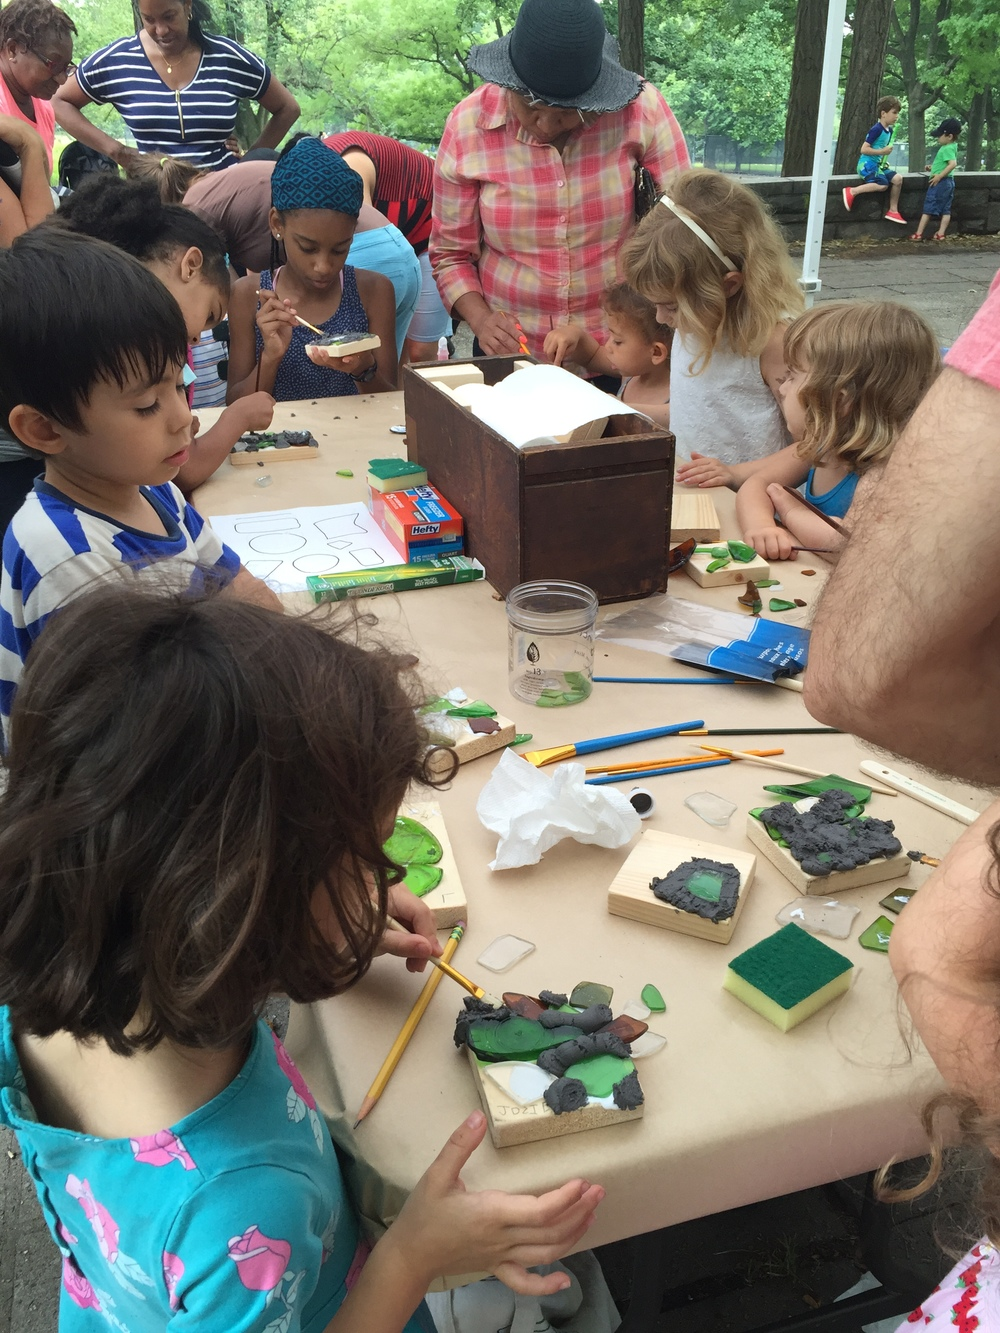 Children eagerly making their own unique mosaic tile with the historic glass pieces